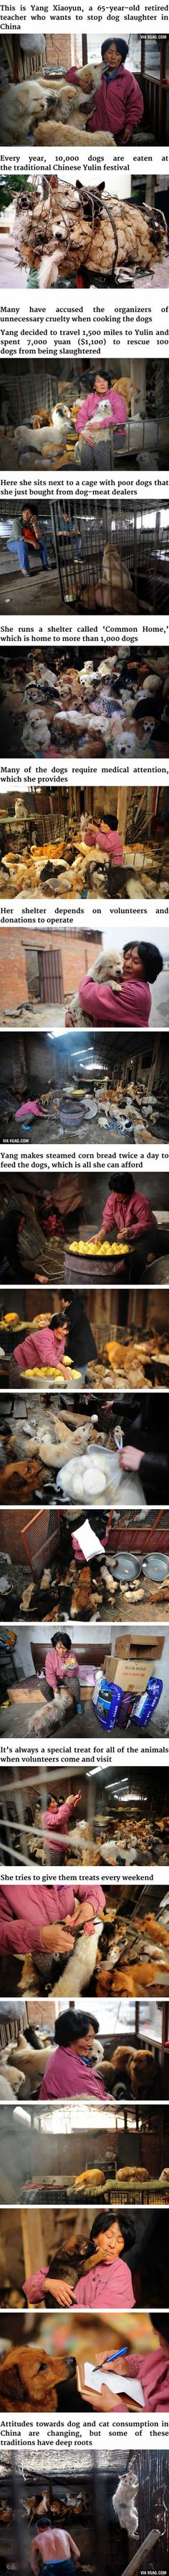 Chinese Woman Travels 1,500 Miles And Pays $1,100 To Save 100 Dogs From Dog-Eating Festival